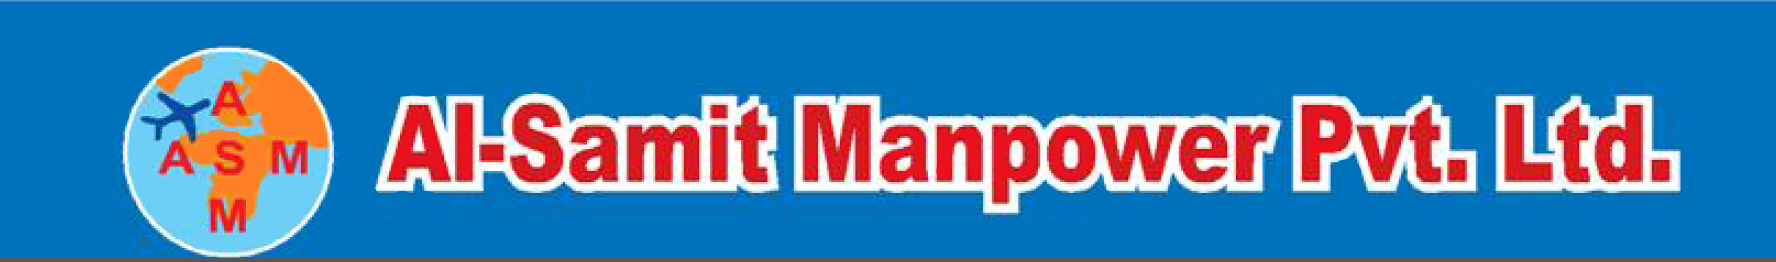 Al-Samit Manpower Pvt. Ltd.